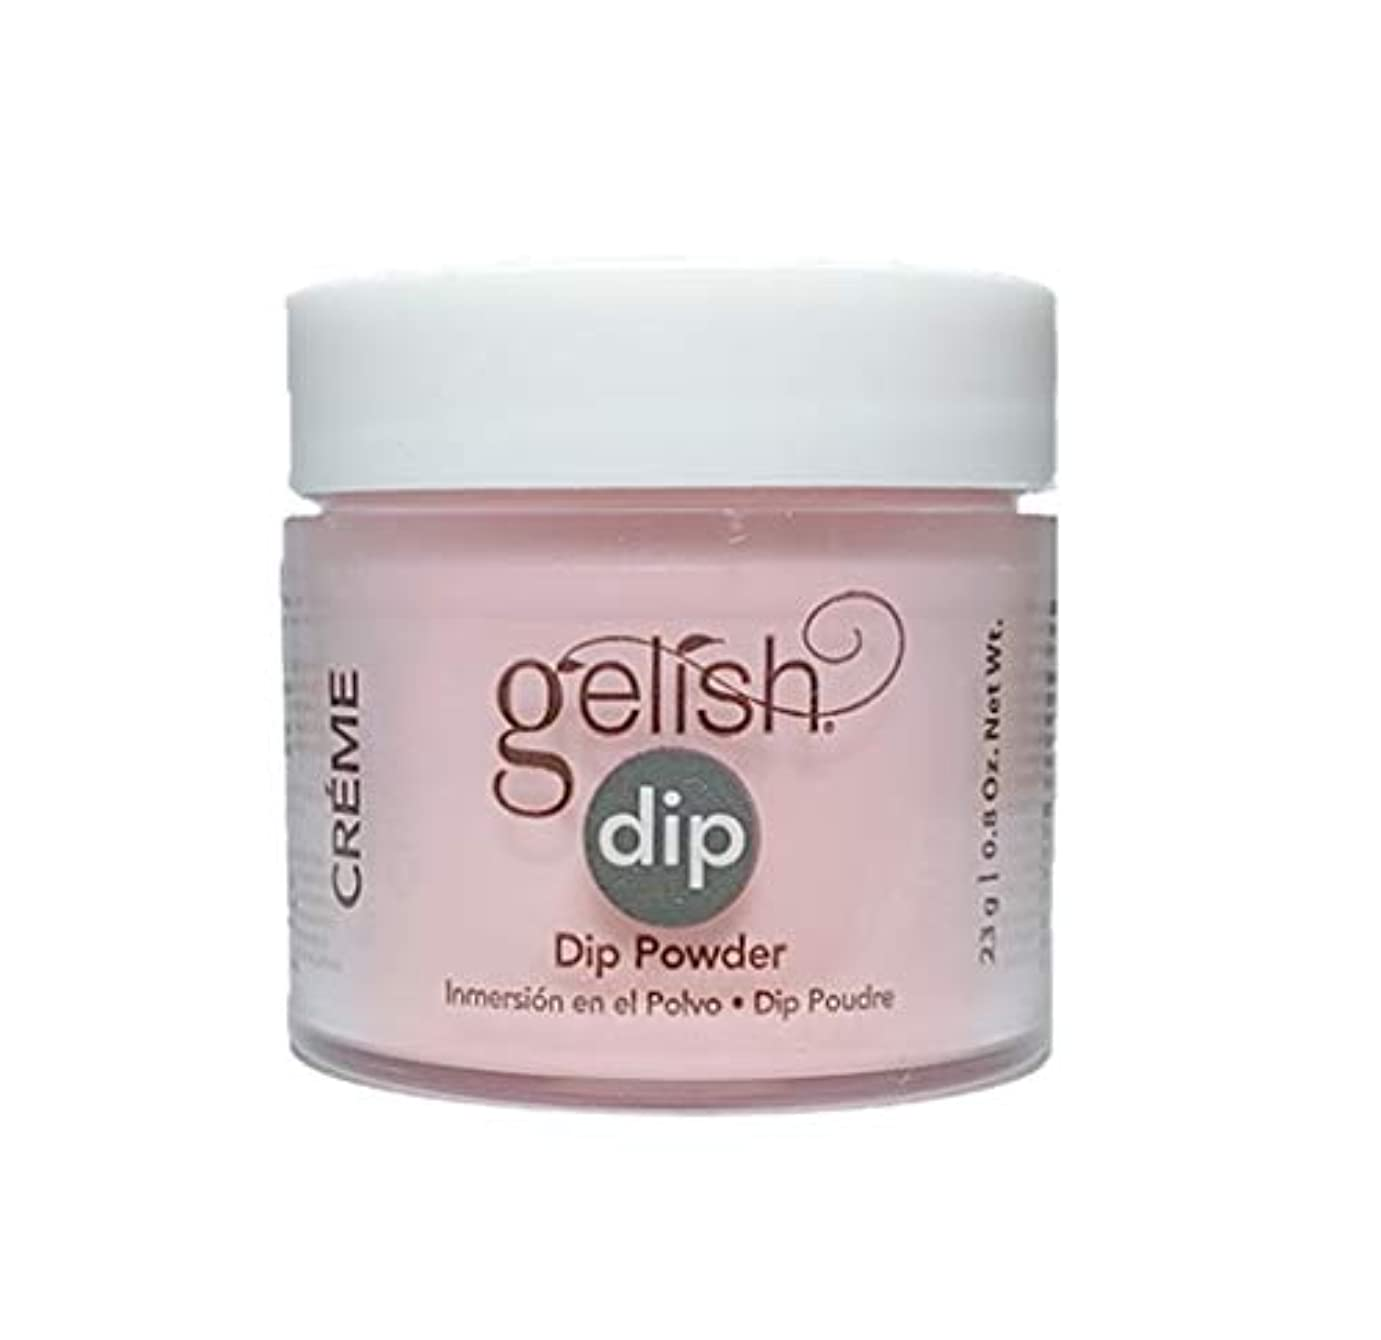 オズワルドずっと魂Harmony Gelish - Dip Powder - Beauty Marks The Spot - 23g / 0.8oz